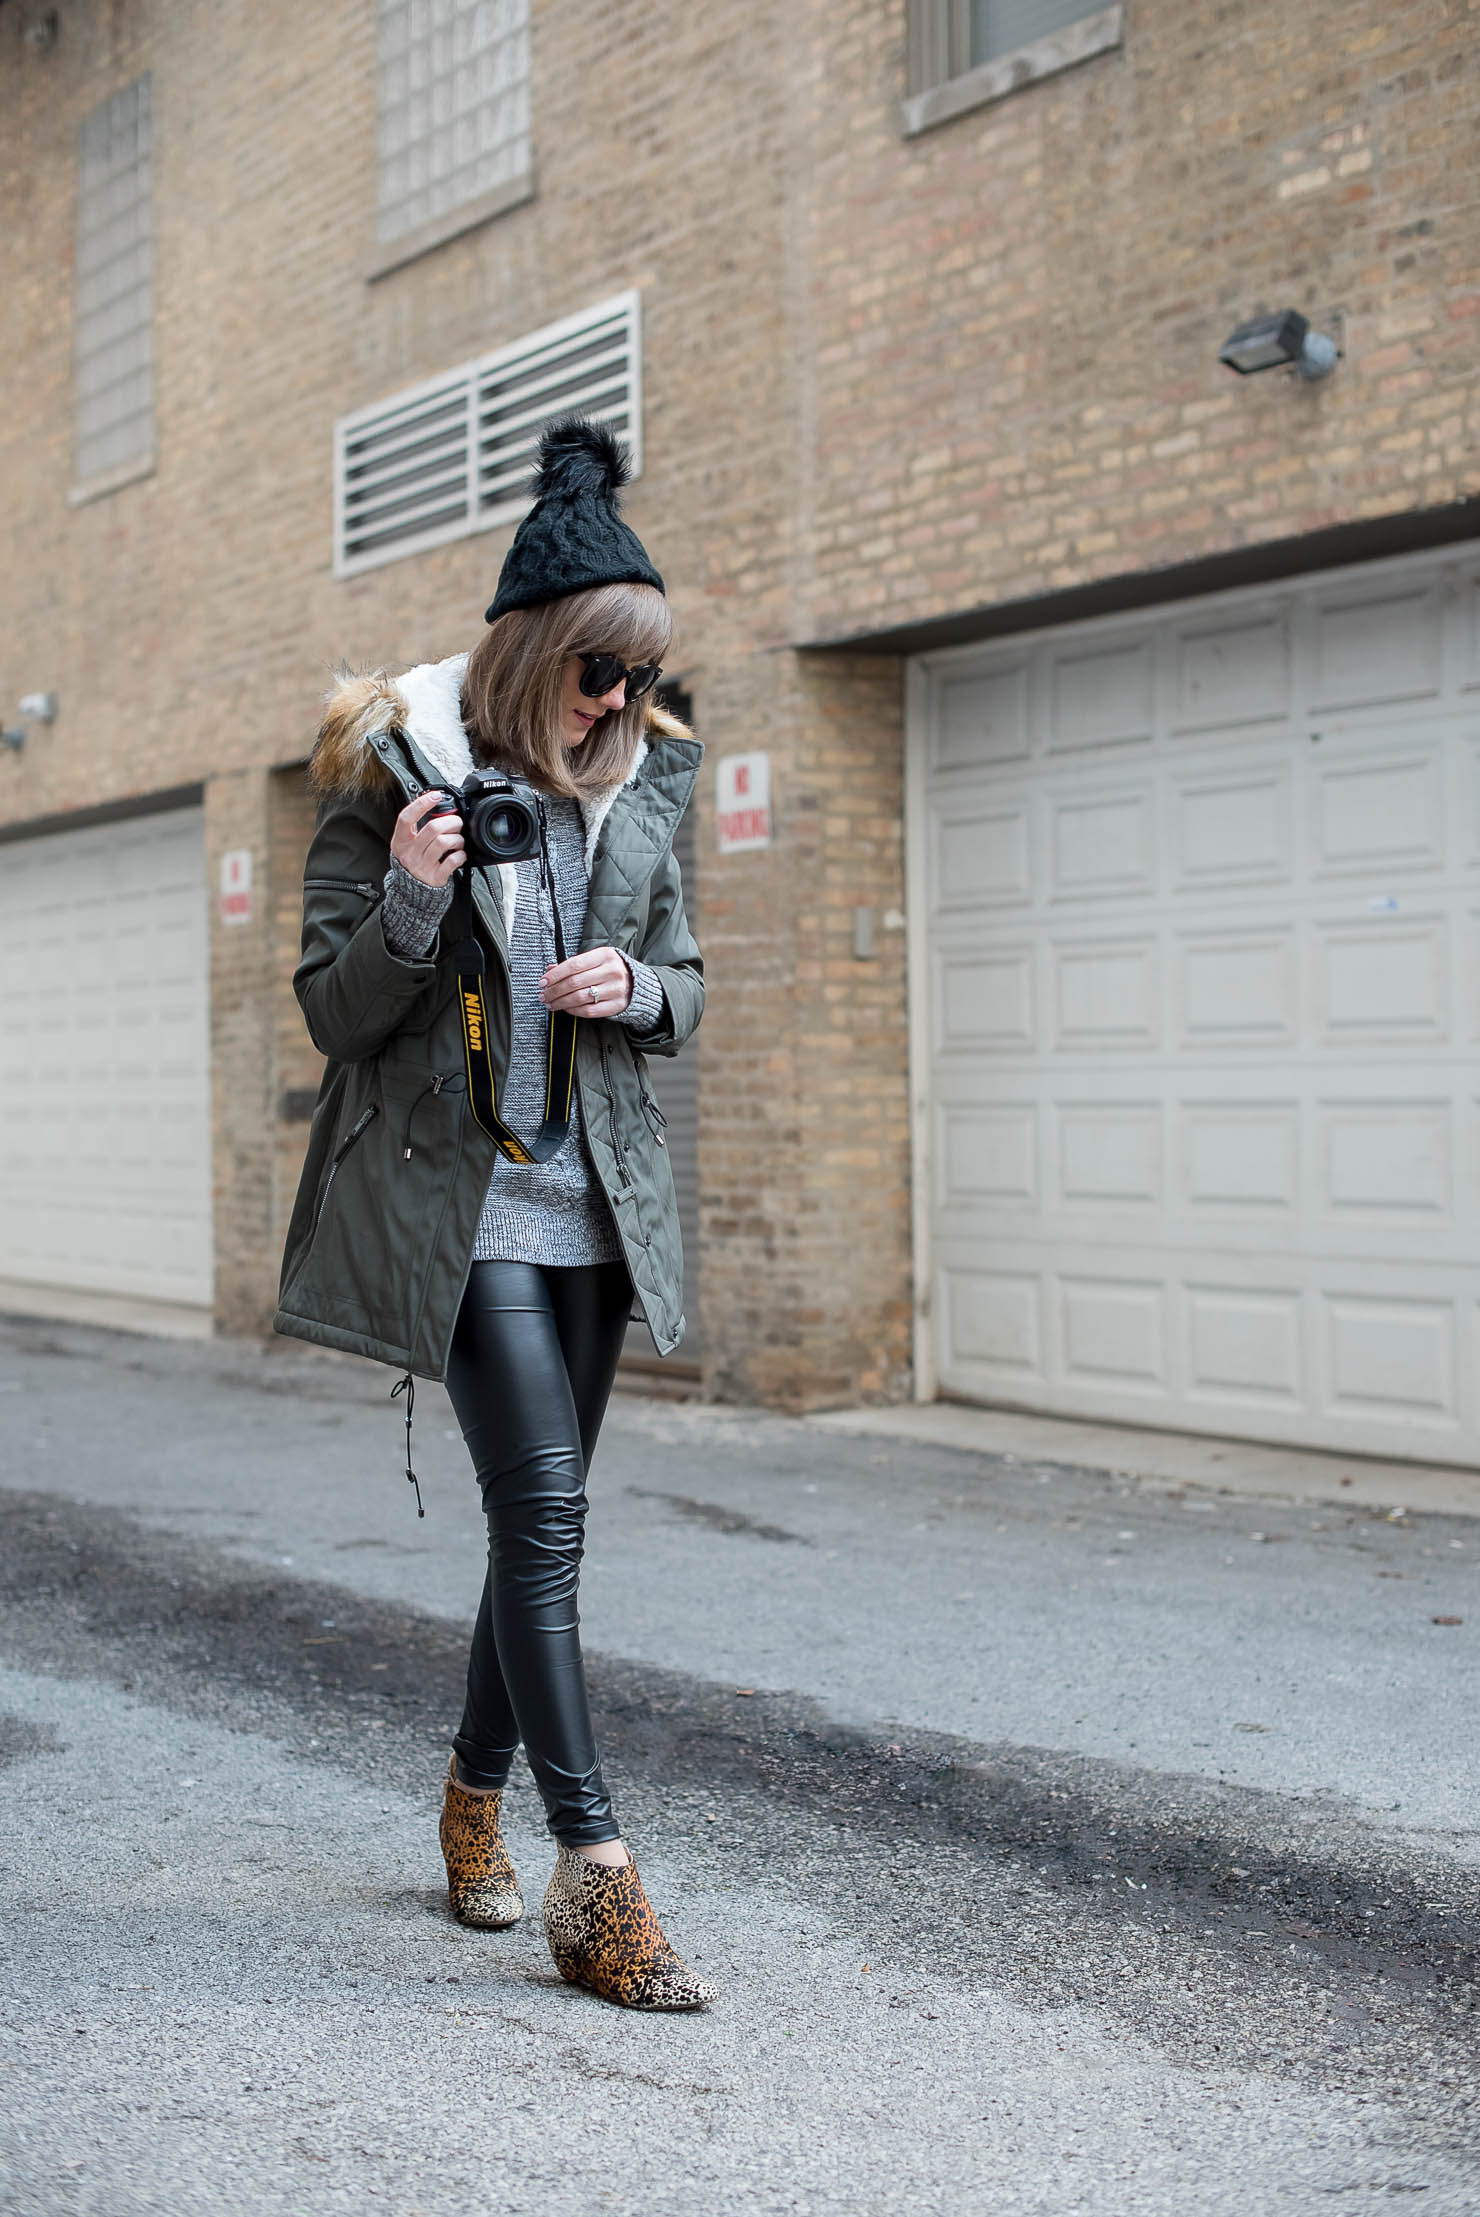 690658623744 behind-the-scenes-of-a-fashion-blogger-the- Pin this image on Pinterest